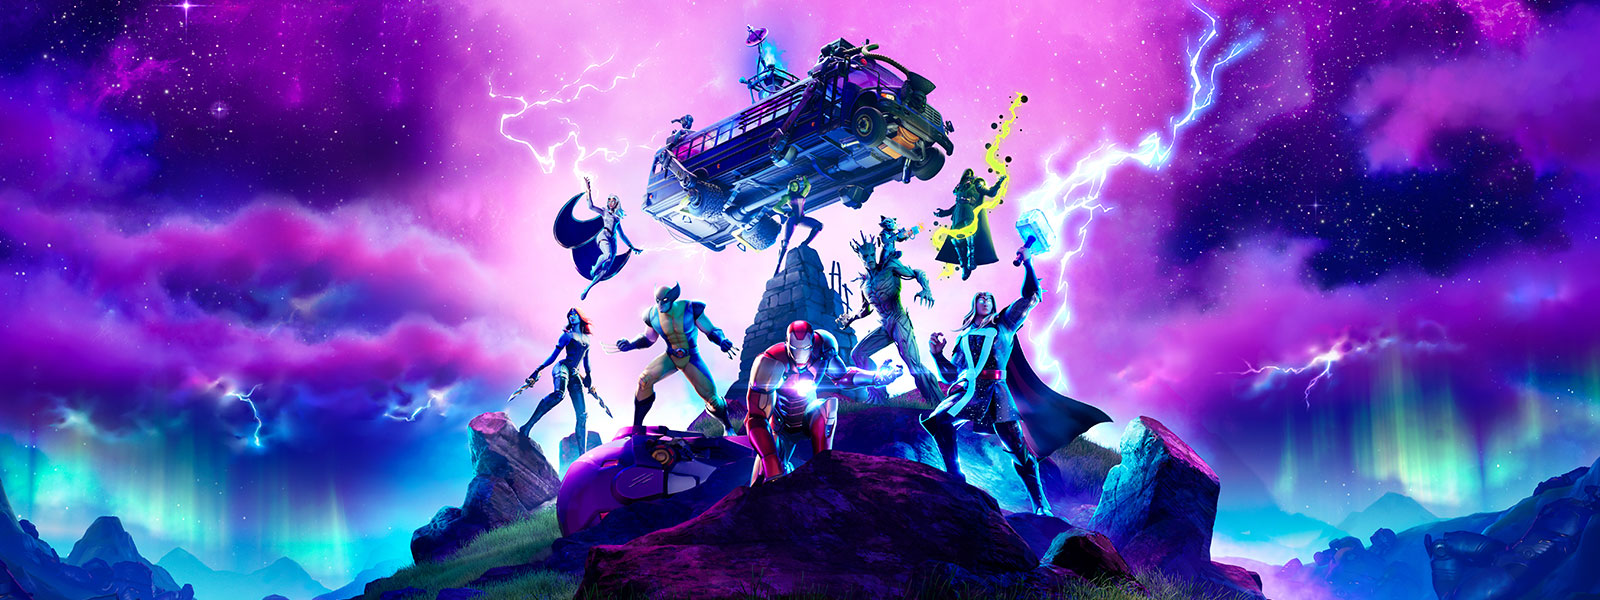 Marvel characters are surrounded by purple lightning as they prepare for battle on a mountaintop.